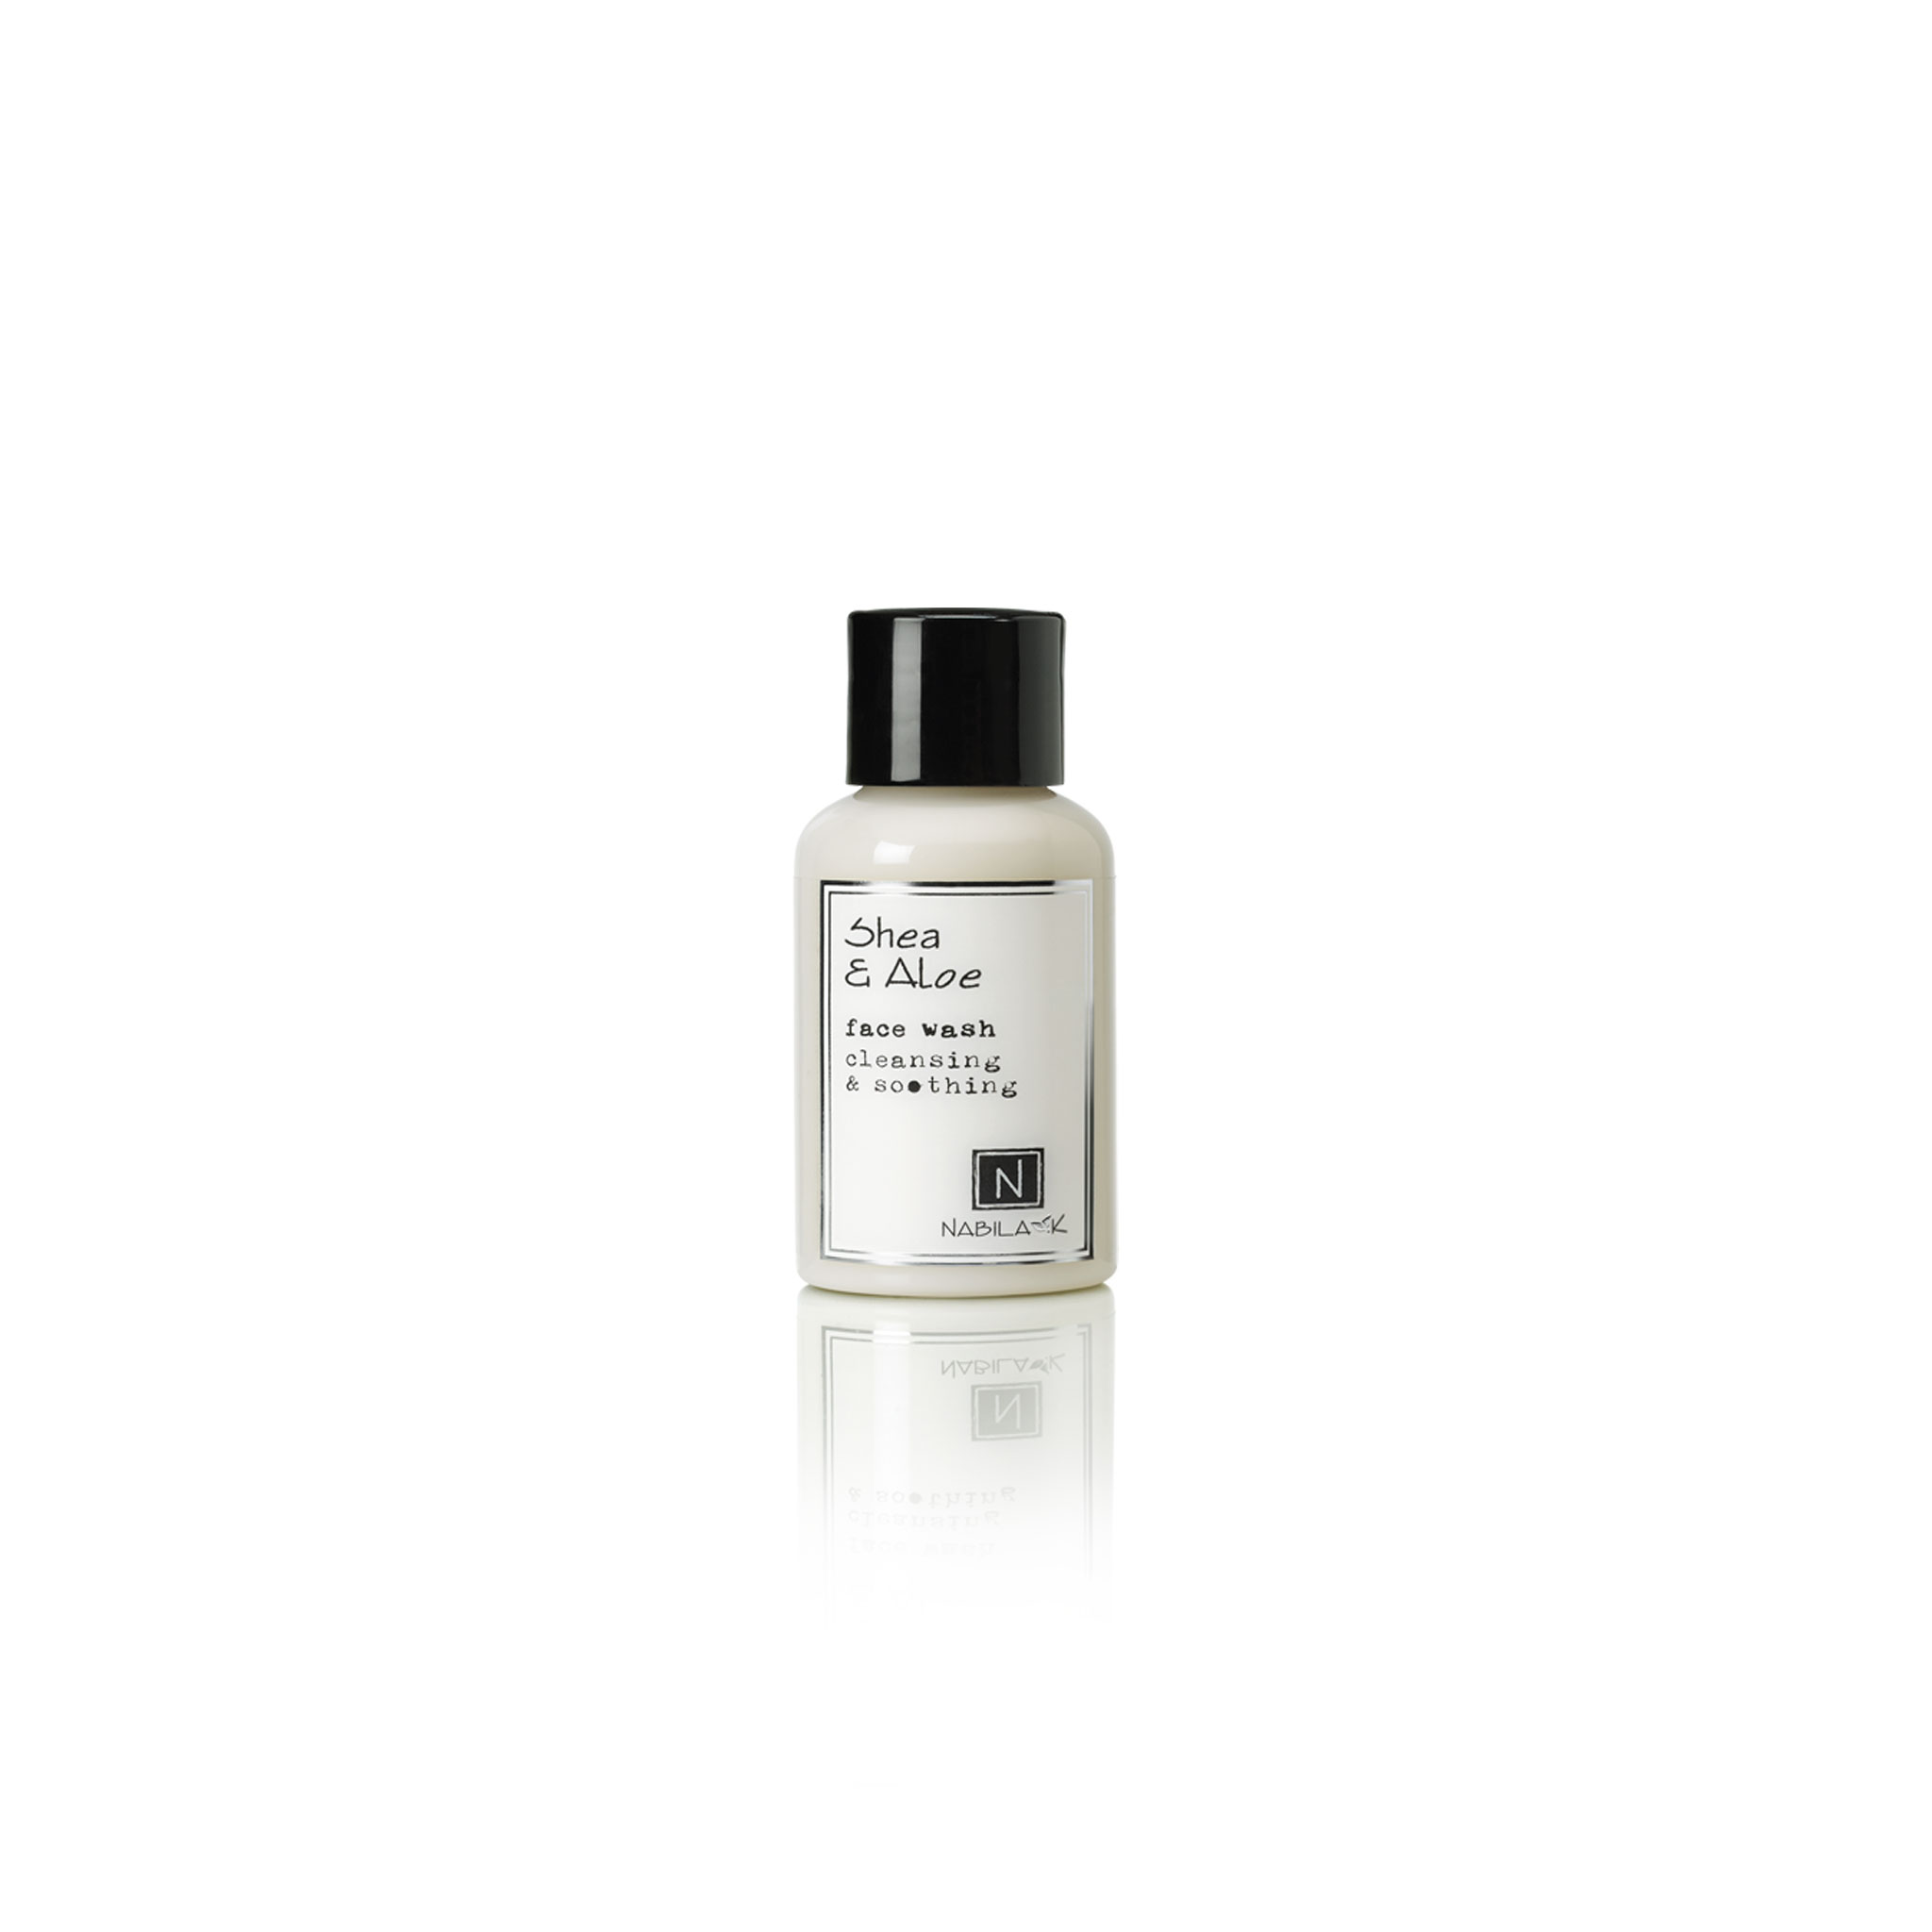 2.4oz bottle of Shea and Aloe Face Wash Cleansing and Soothing